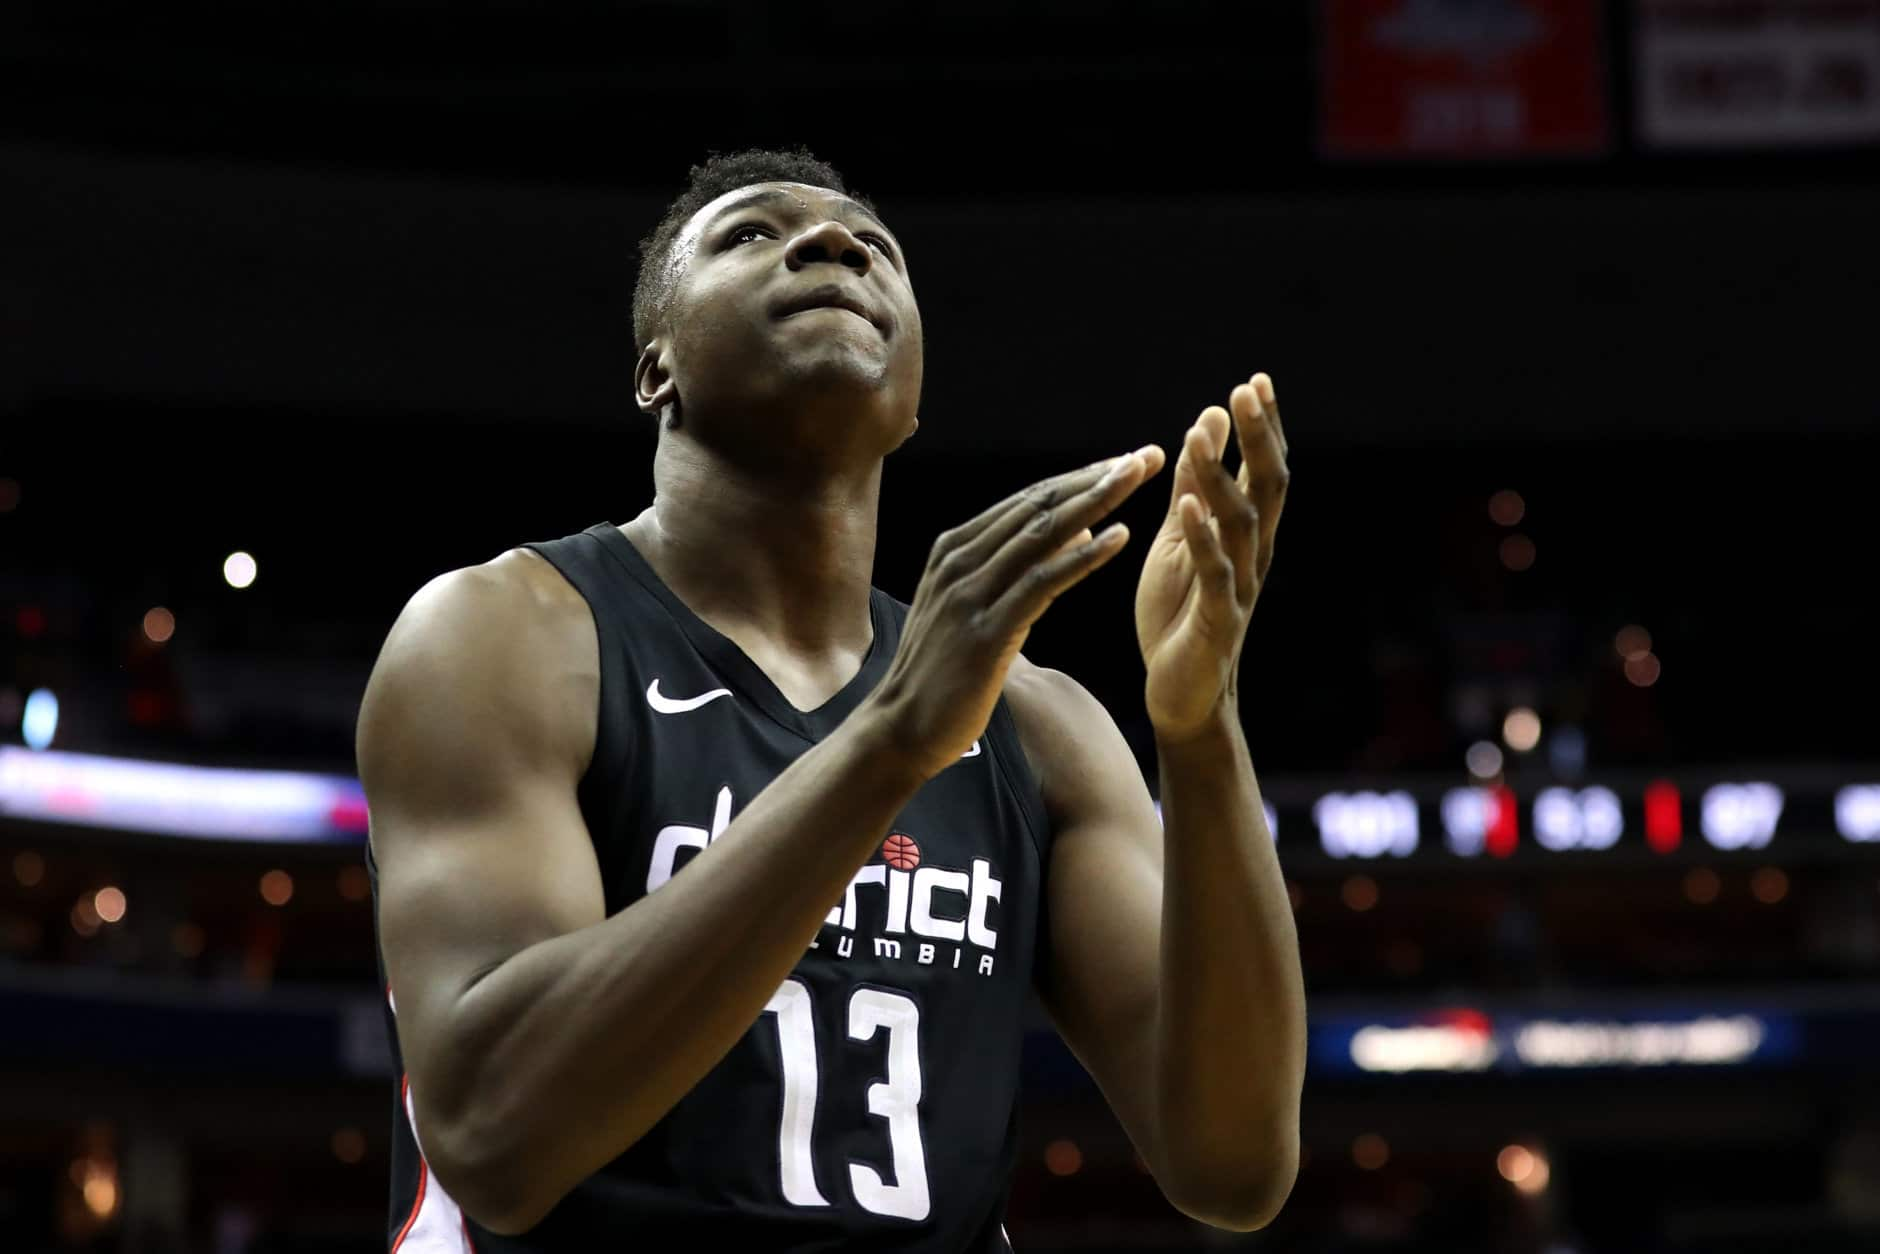 WASHINGTON, DC - JANUARY 21: Thomas Bryant #13 of the Washington Wizards claps during the closing seconds of the Wizards 101-87 win over the Detroit Pistons at Capital One Arena on January 21, 2019 in Washington, DC. NOTE TO USER: User expressly acknowledges and agrees that, by downloading and or using this photograph, User is consenting to the terms and conditions of the Getty Images License Agreement. (Photo by Rob Carr/Getty Images)